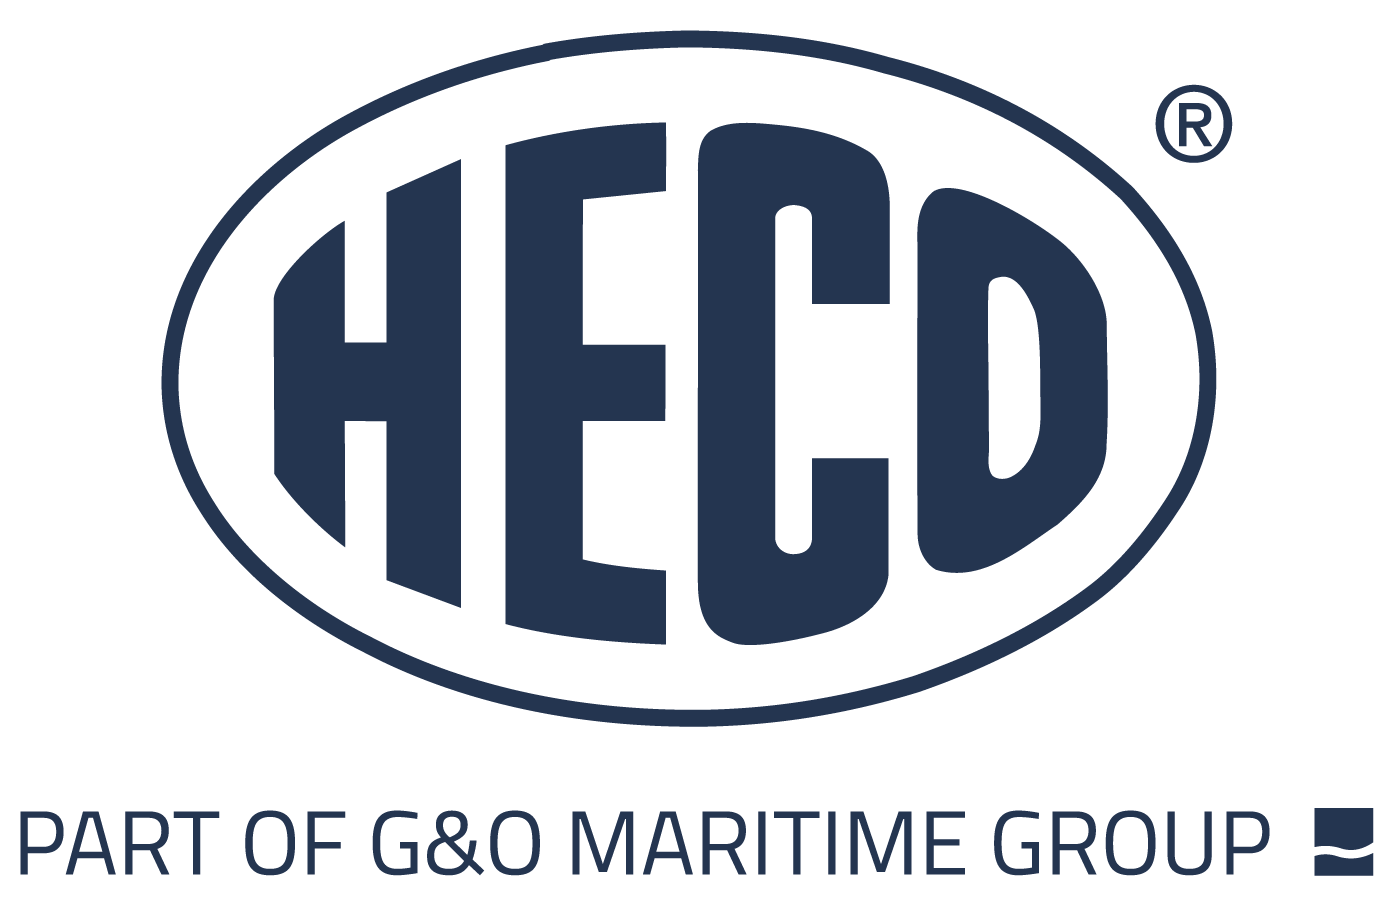 Heco_Line_Color-part-of